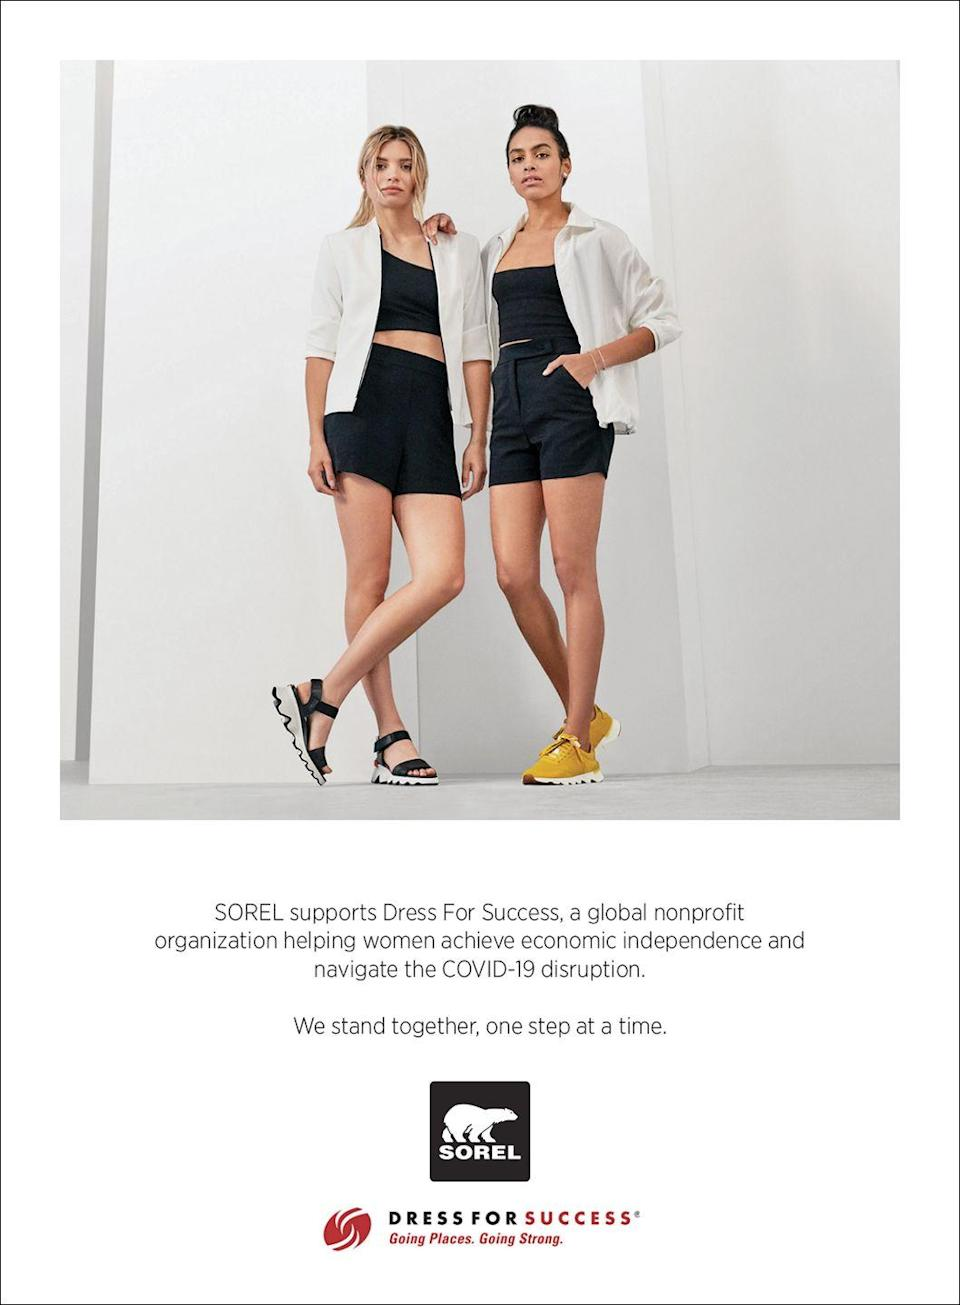 <p>SOREL supports Dress For Success, a global nonprofit organization helping women achieve economic independence and navigate the COVID-19 disruption.</p><p>We stand together, one step at a time.</p>